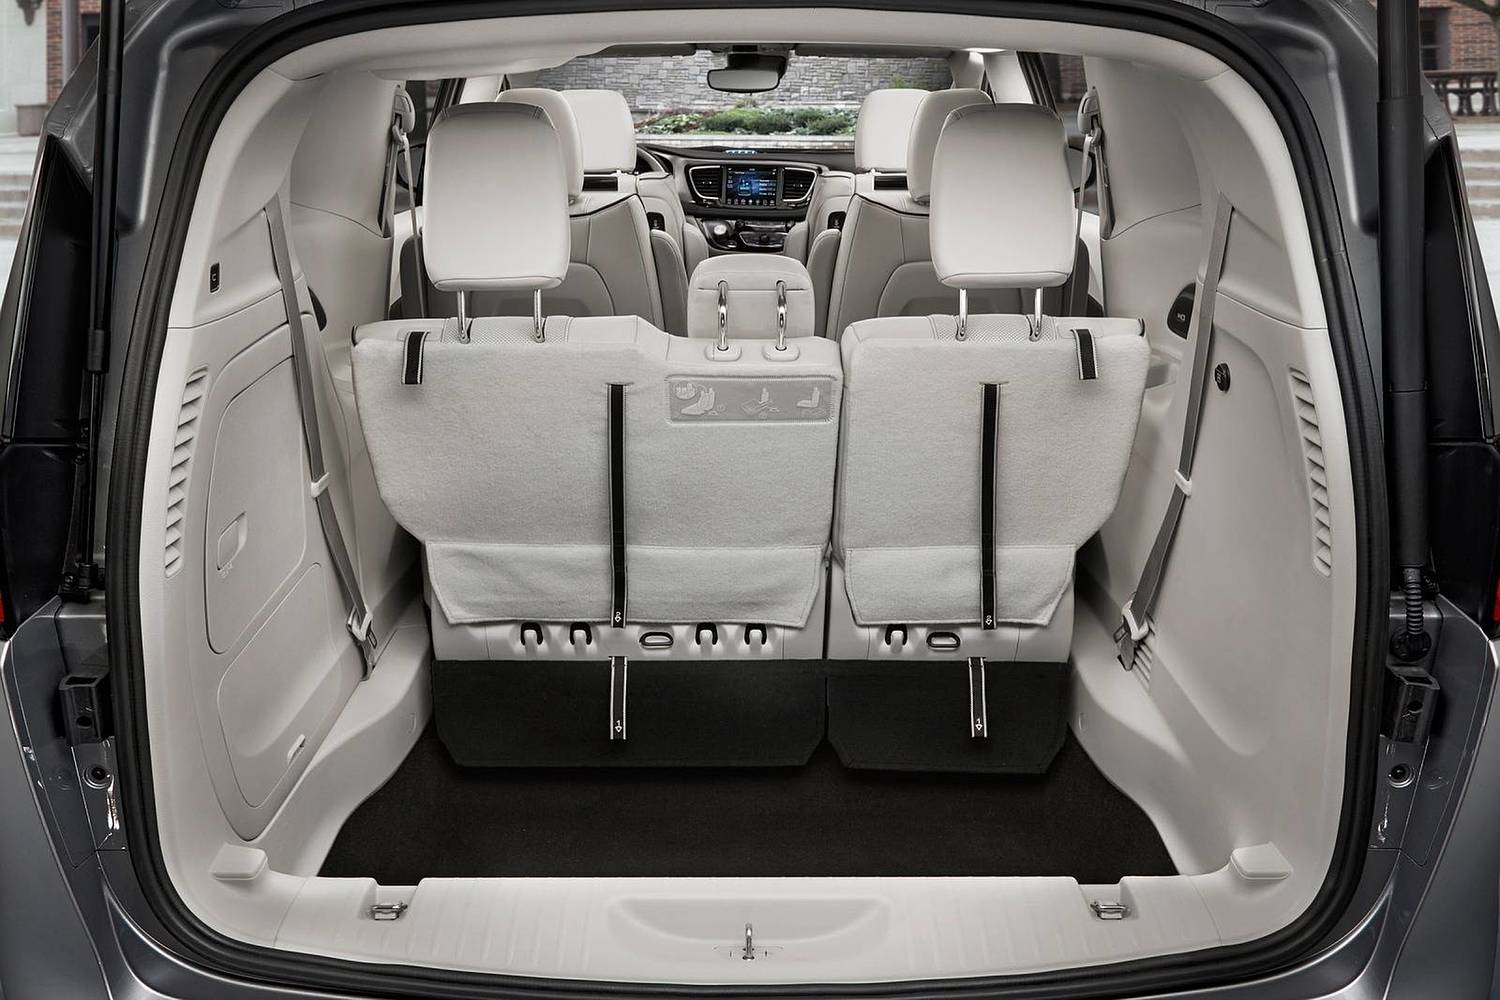 2018 Chrysler Pacifica Hybrid Touring Plus Passenger Minivan Cargo Area Shown